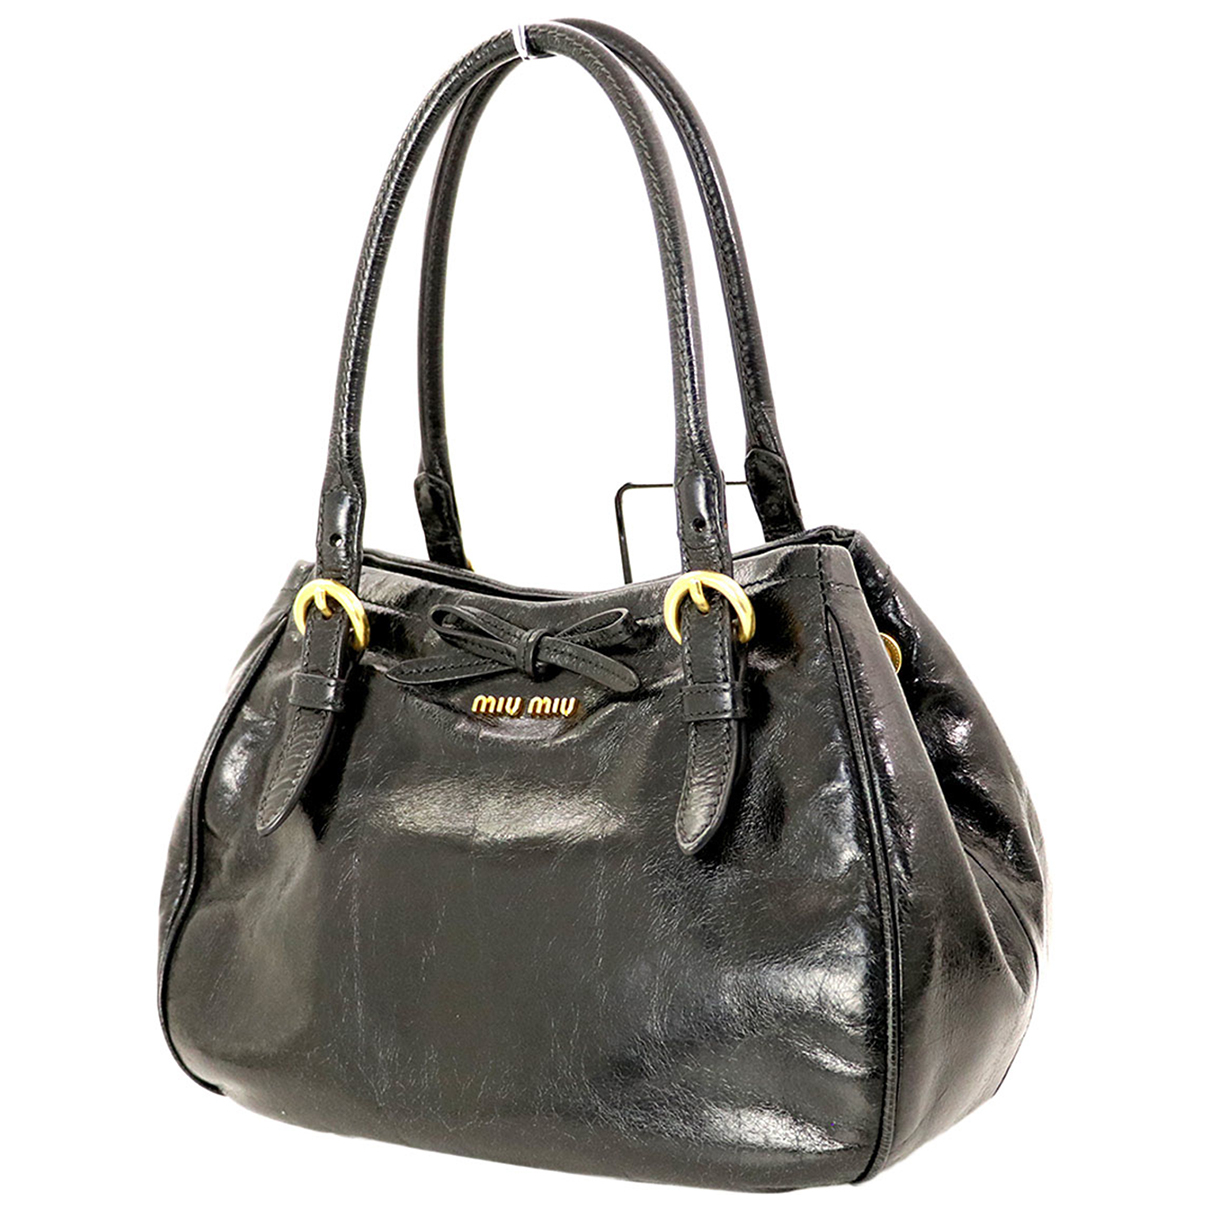 Miu Miu N Black Leather handbag for Women N